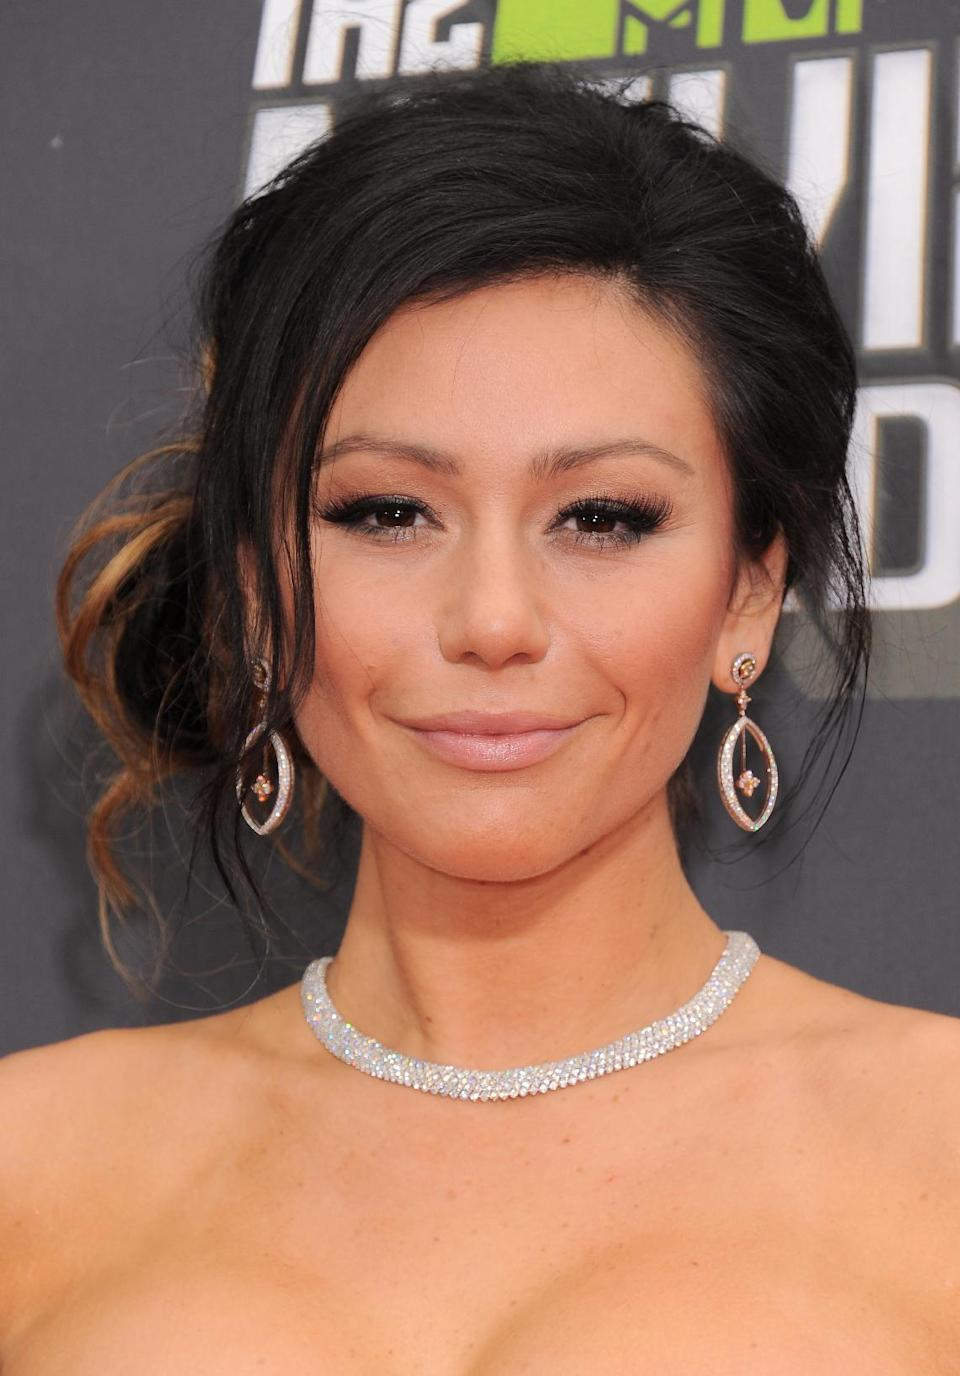 "Jenni ""Jwoww"" Farley arrives at the MTV Movie Awards in Sony Pictures Studio Lot in Culver City, Calif., on Sunday April 14, 2013. (Photo by Jordan Strauss/Invision/AP)"